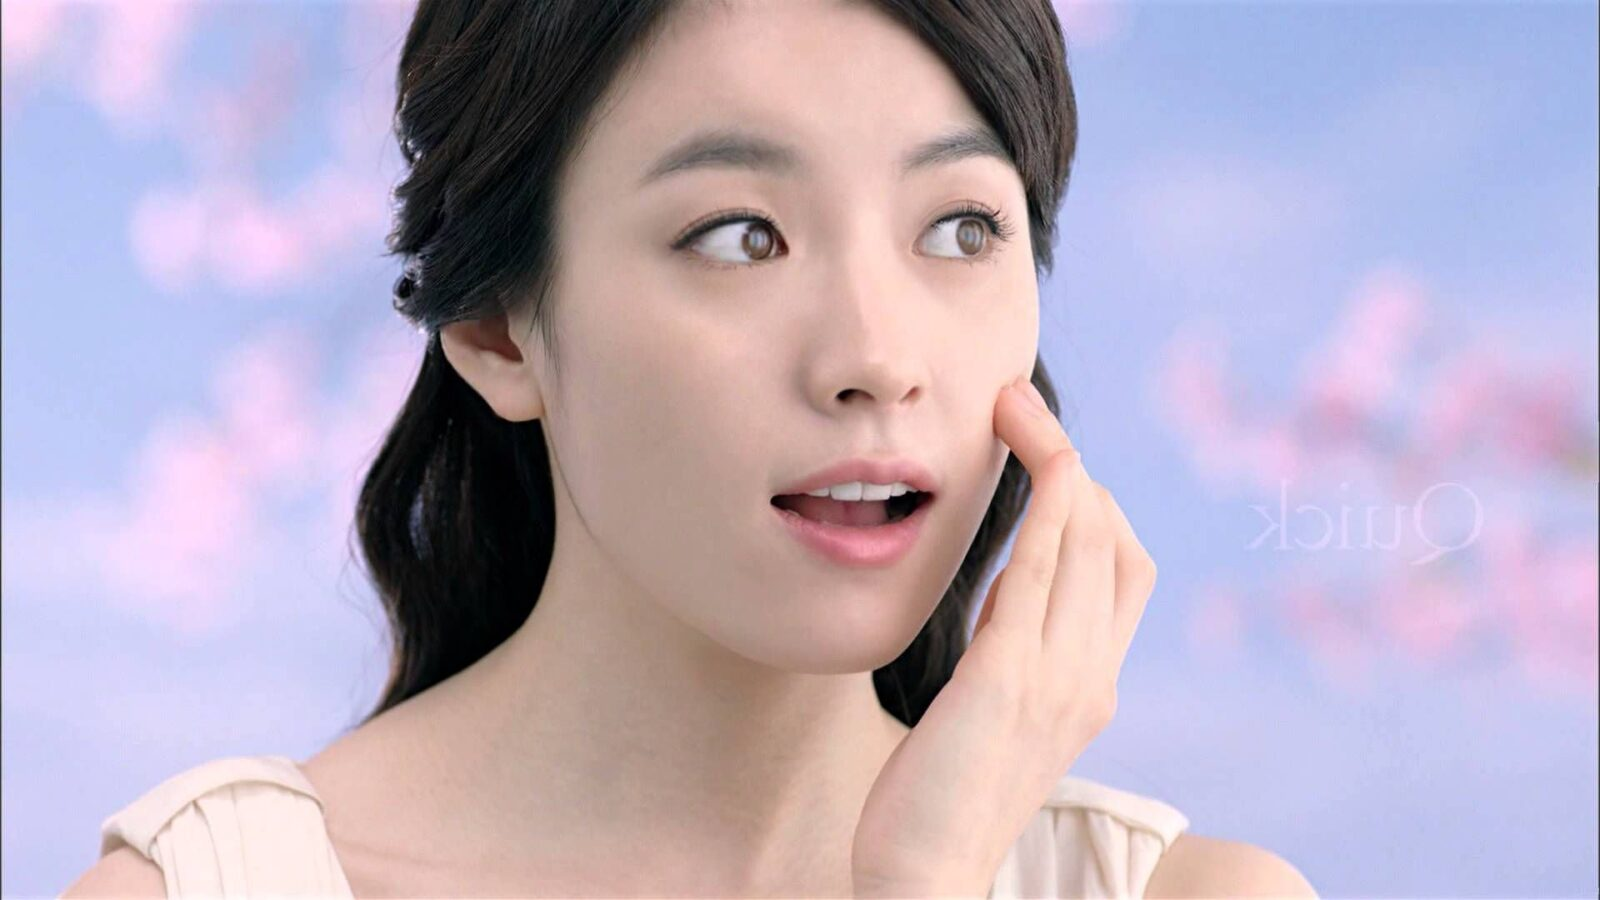 http://wallpapersqq.net/wp-content/uploads/2015/12/Han-Hyo-Joo-face.jpg